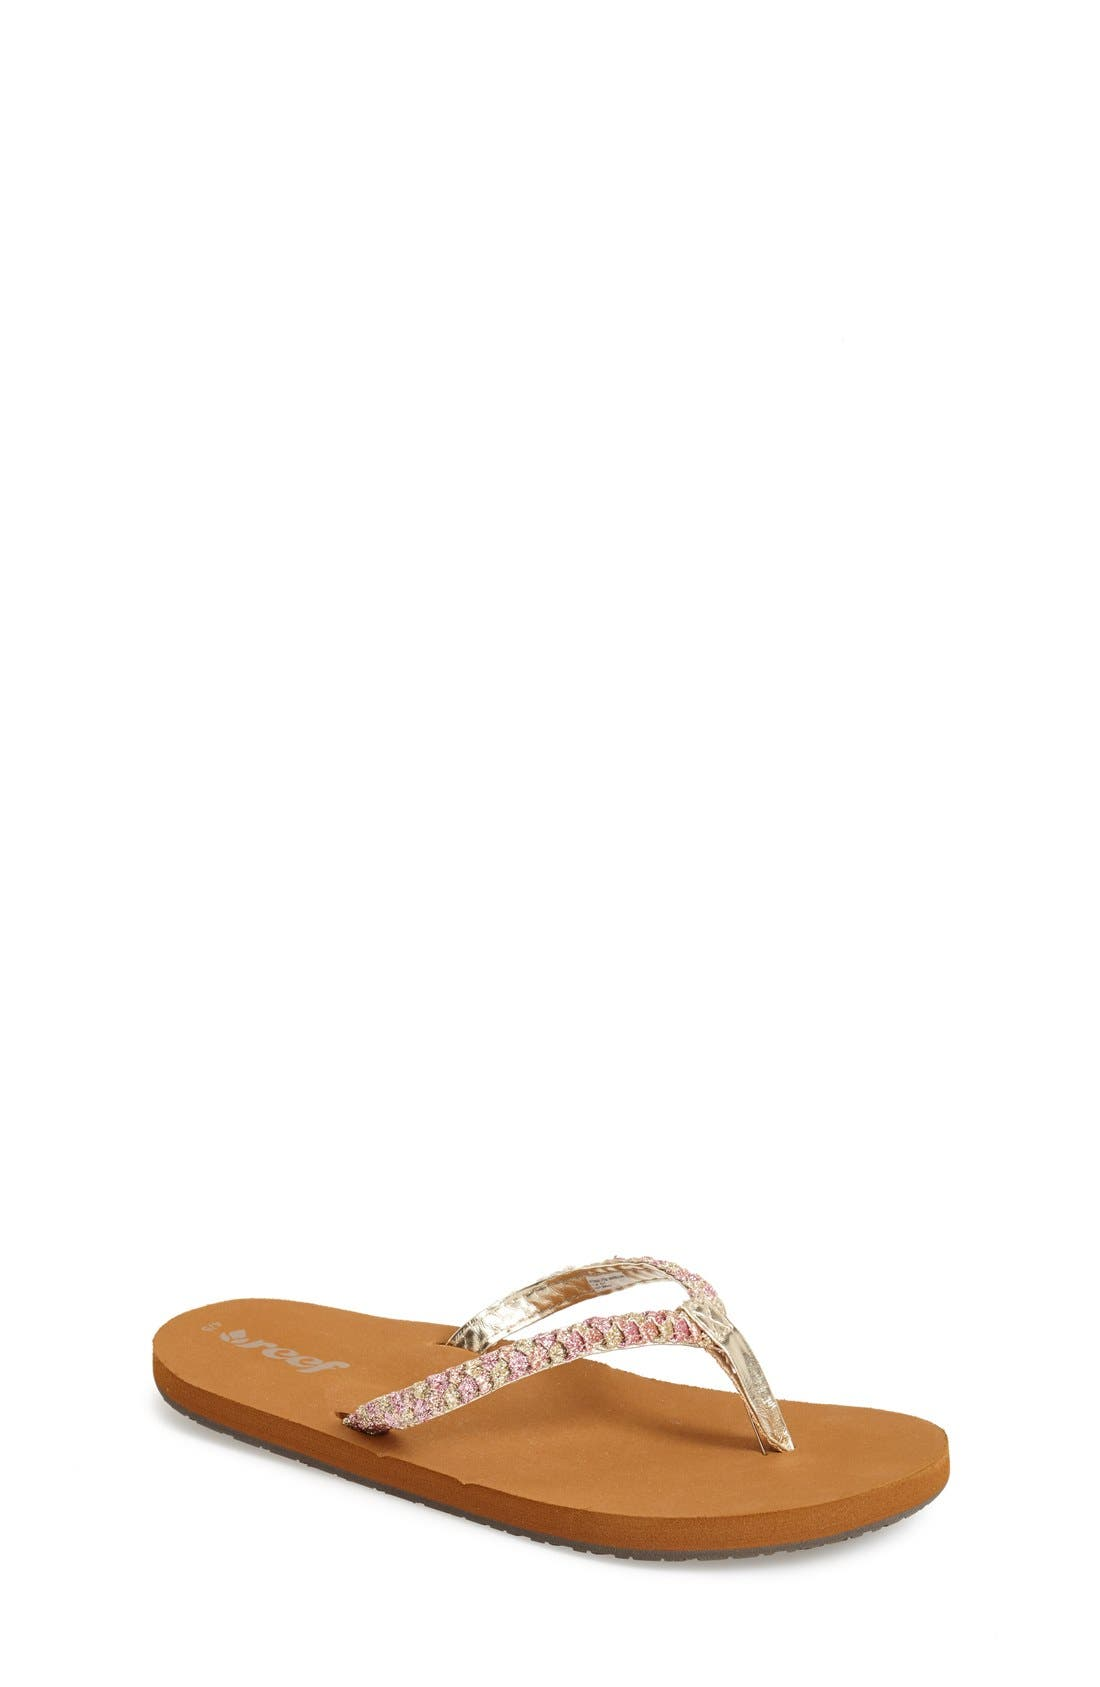 Main Image - Reef 'Little Twisted Stars' Sandal (Walker, Toddler, Little Kid & Big Kid)